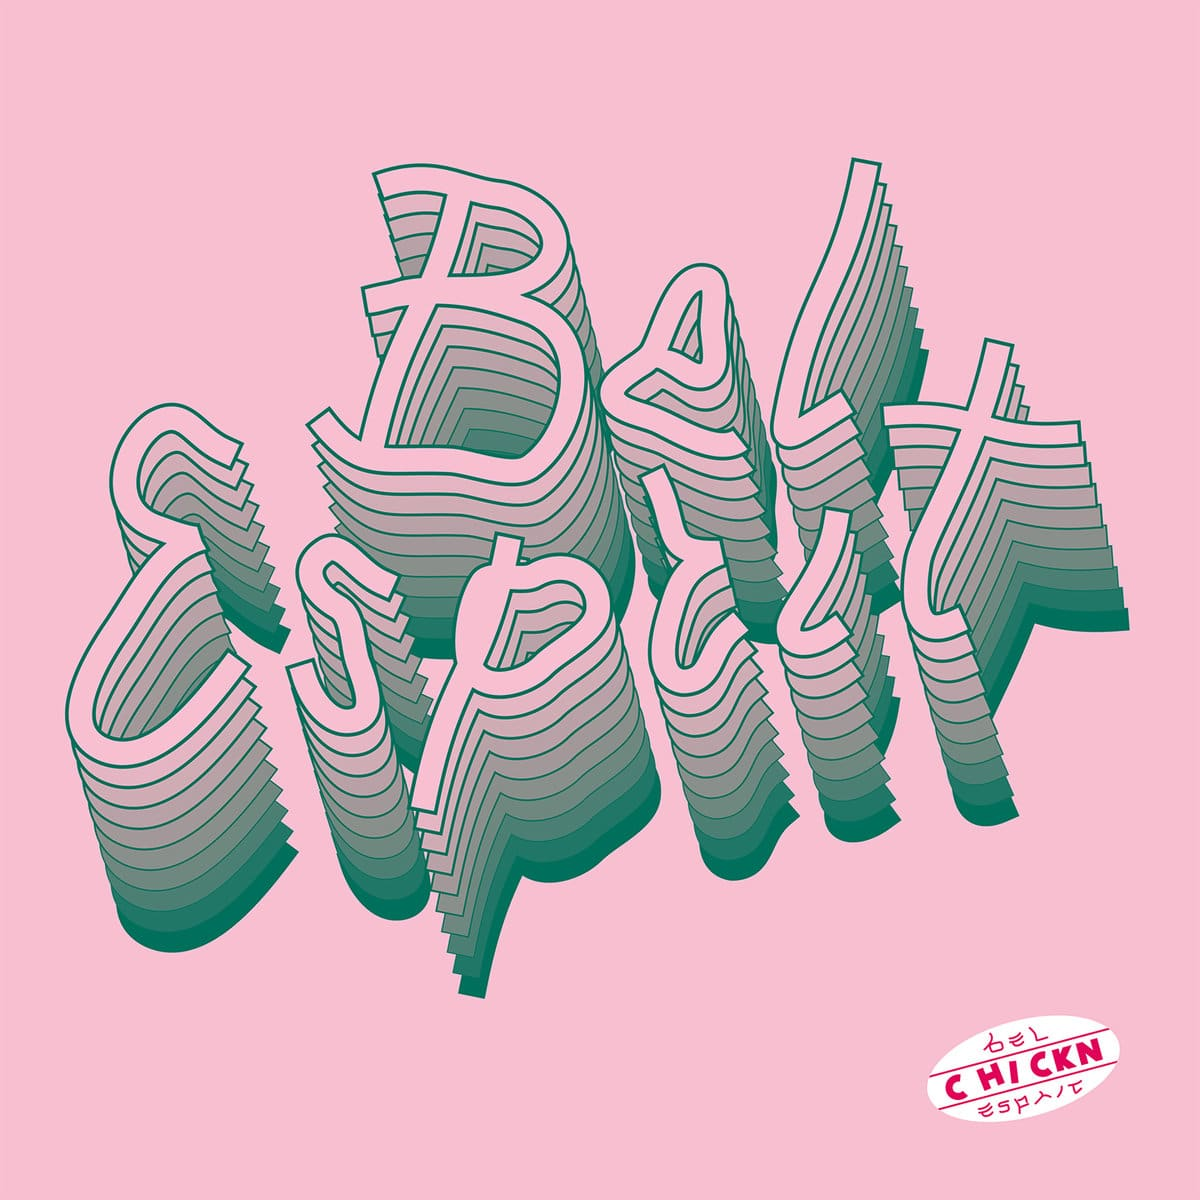 Album Review: Bel Espirit // CHICKN